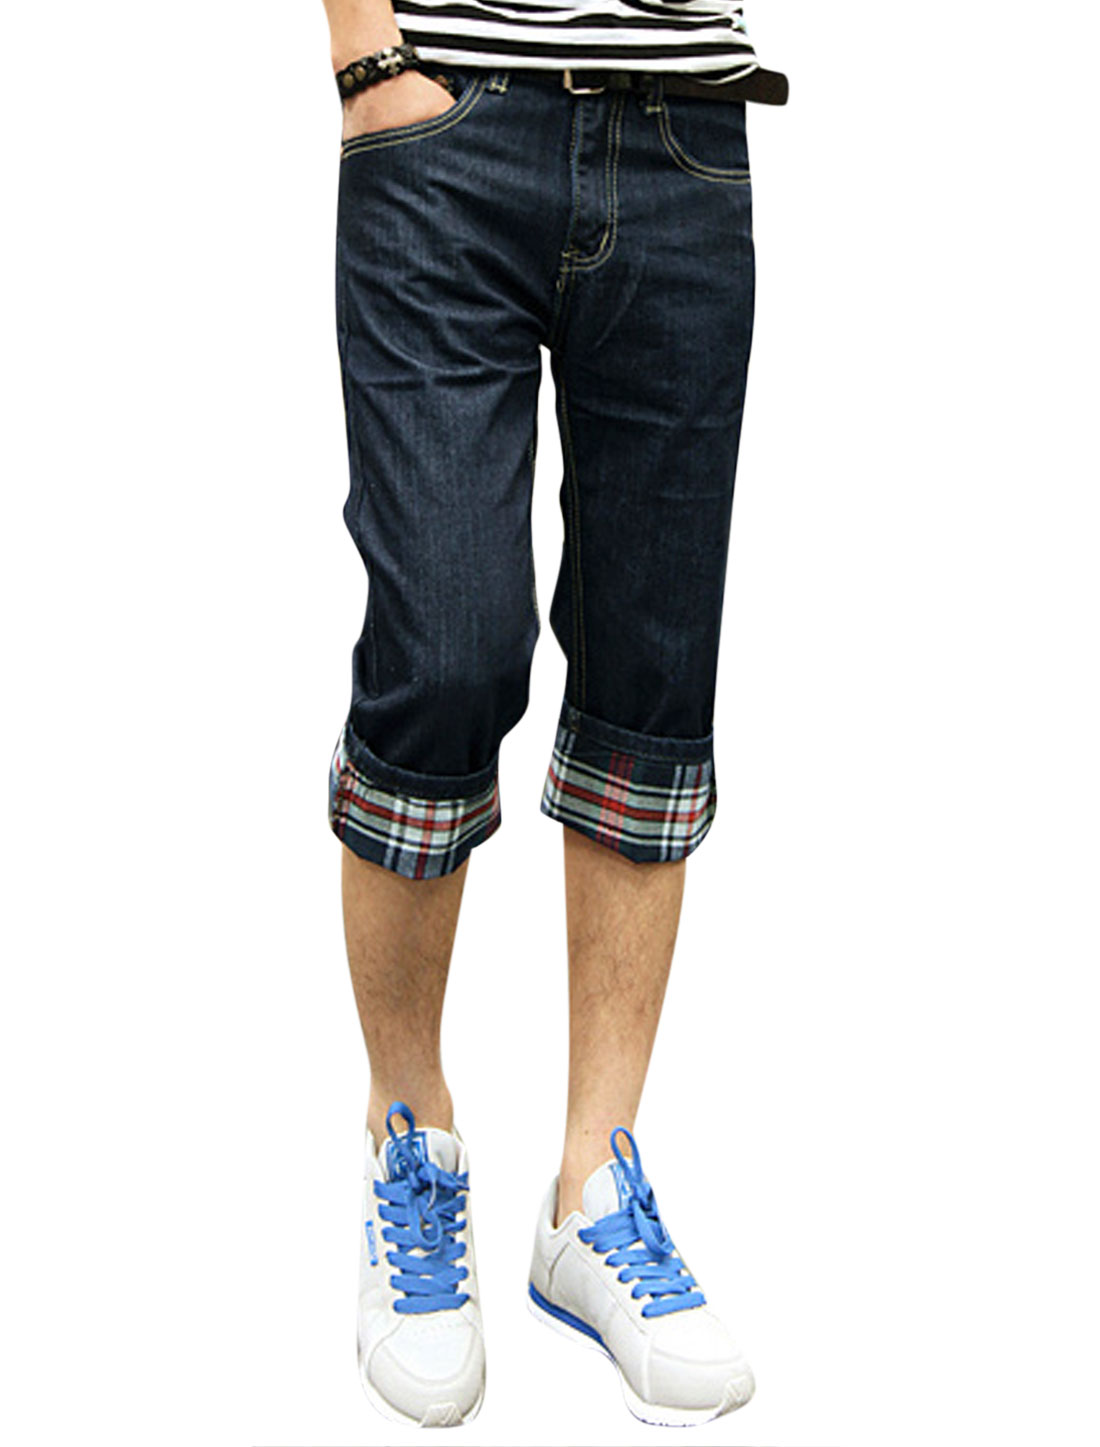 Men Mid Rise Checks Roll Up Cuffs Casual Capri Jeans Navy Blue W30